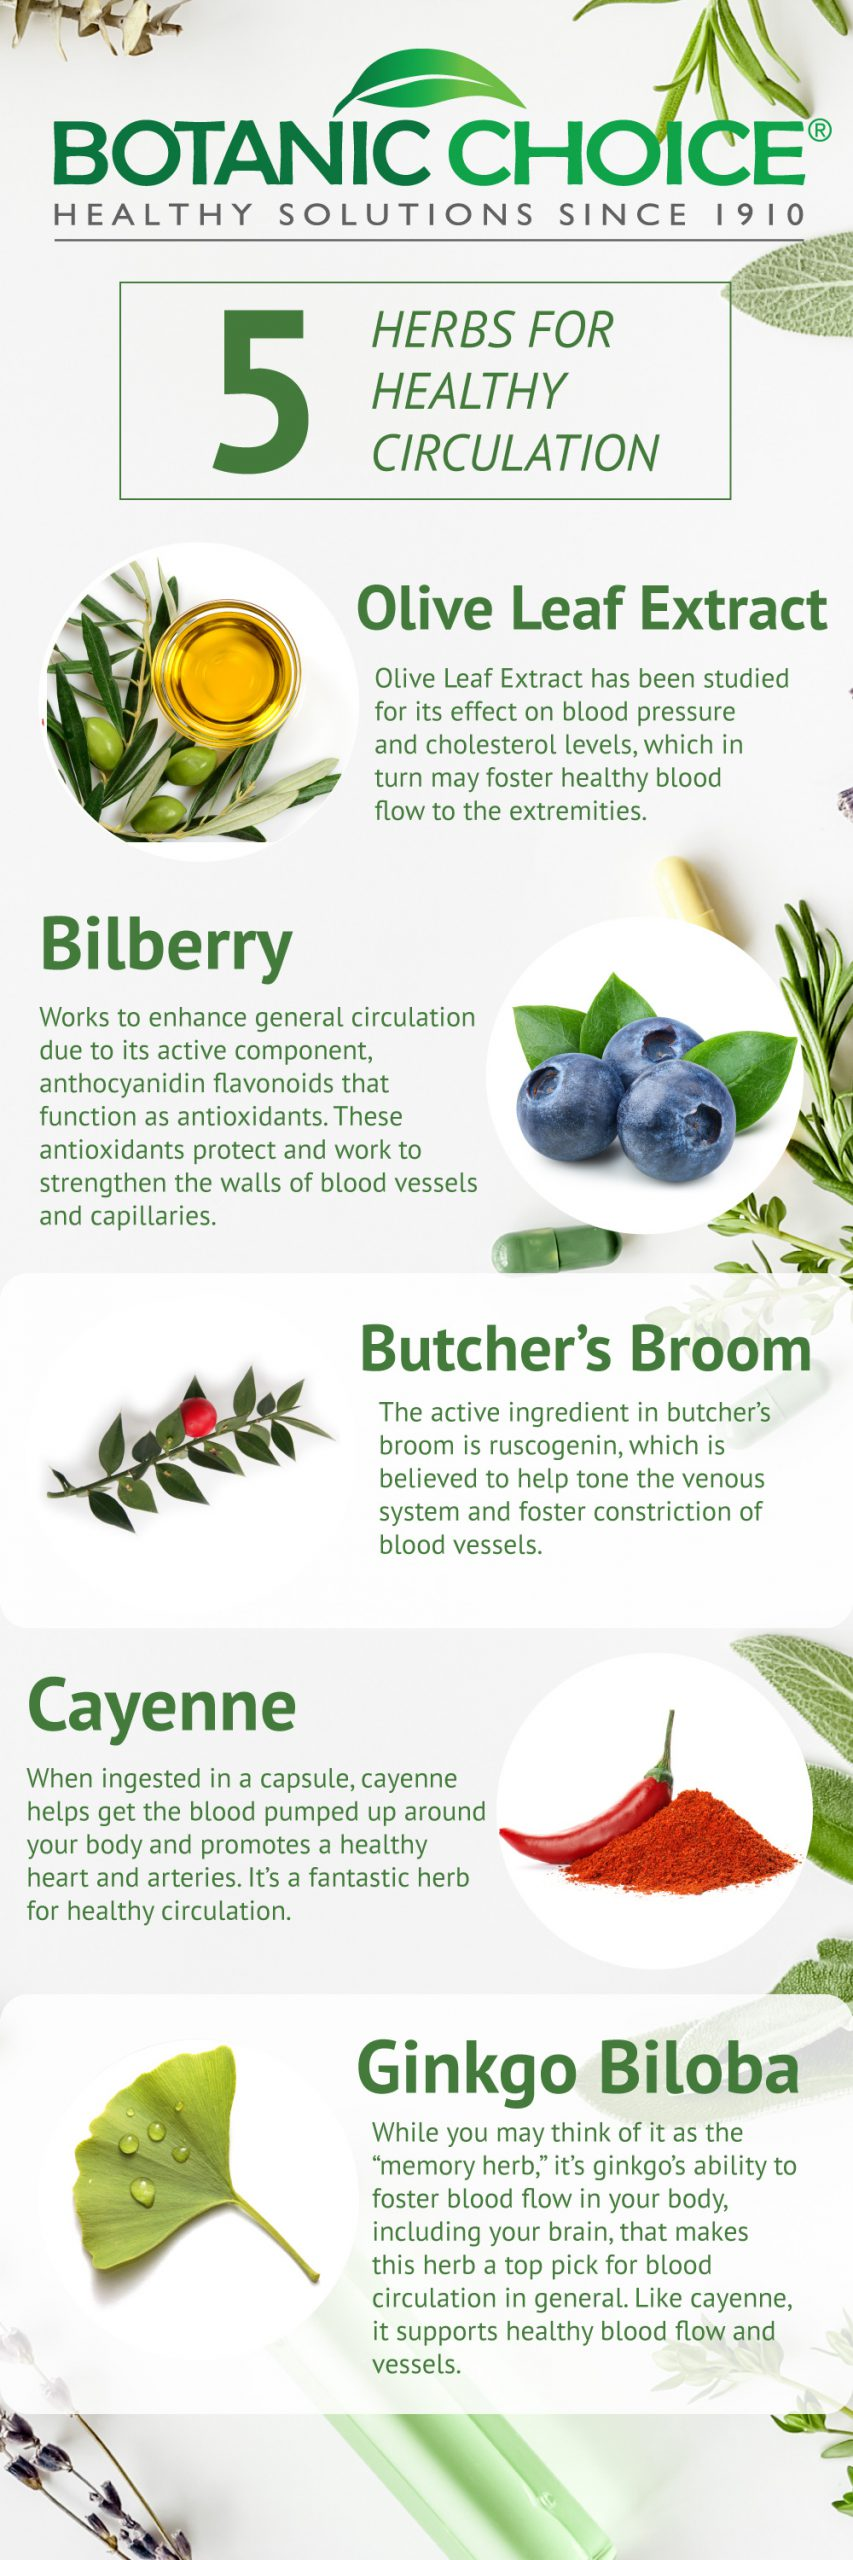 5 herbs for healthy circulation: olive oil extract, bilberry, butchers broom, cayenne, ginkgo biloba